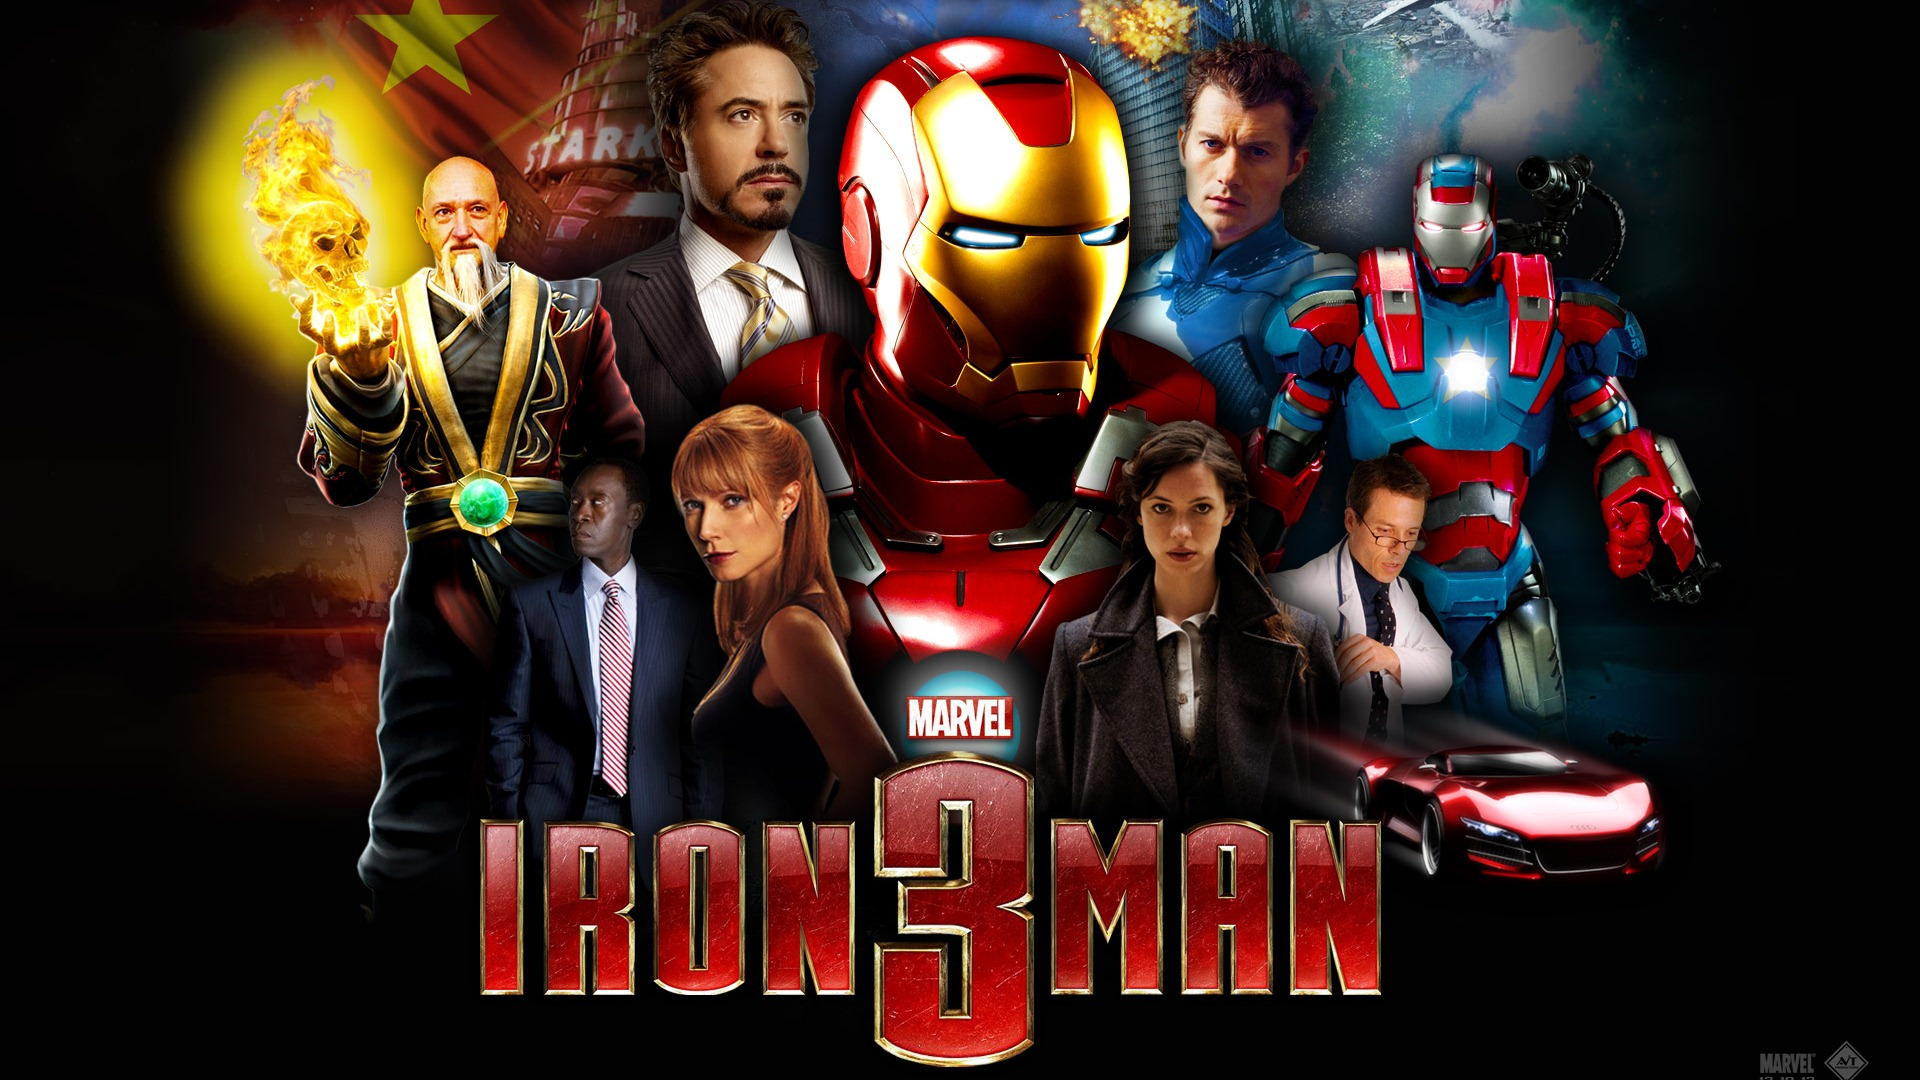 Iron man 3 fonds d 39 cran hd 2 1920x1080 fond d 39 cran - Iron man 2 telecharger ...